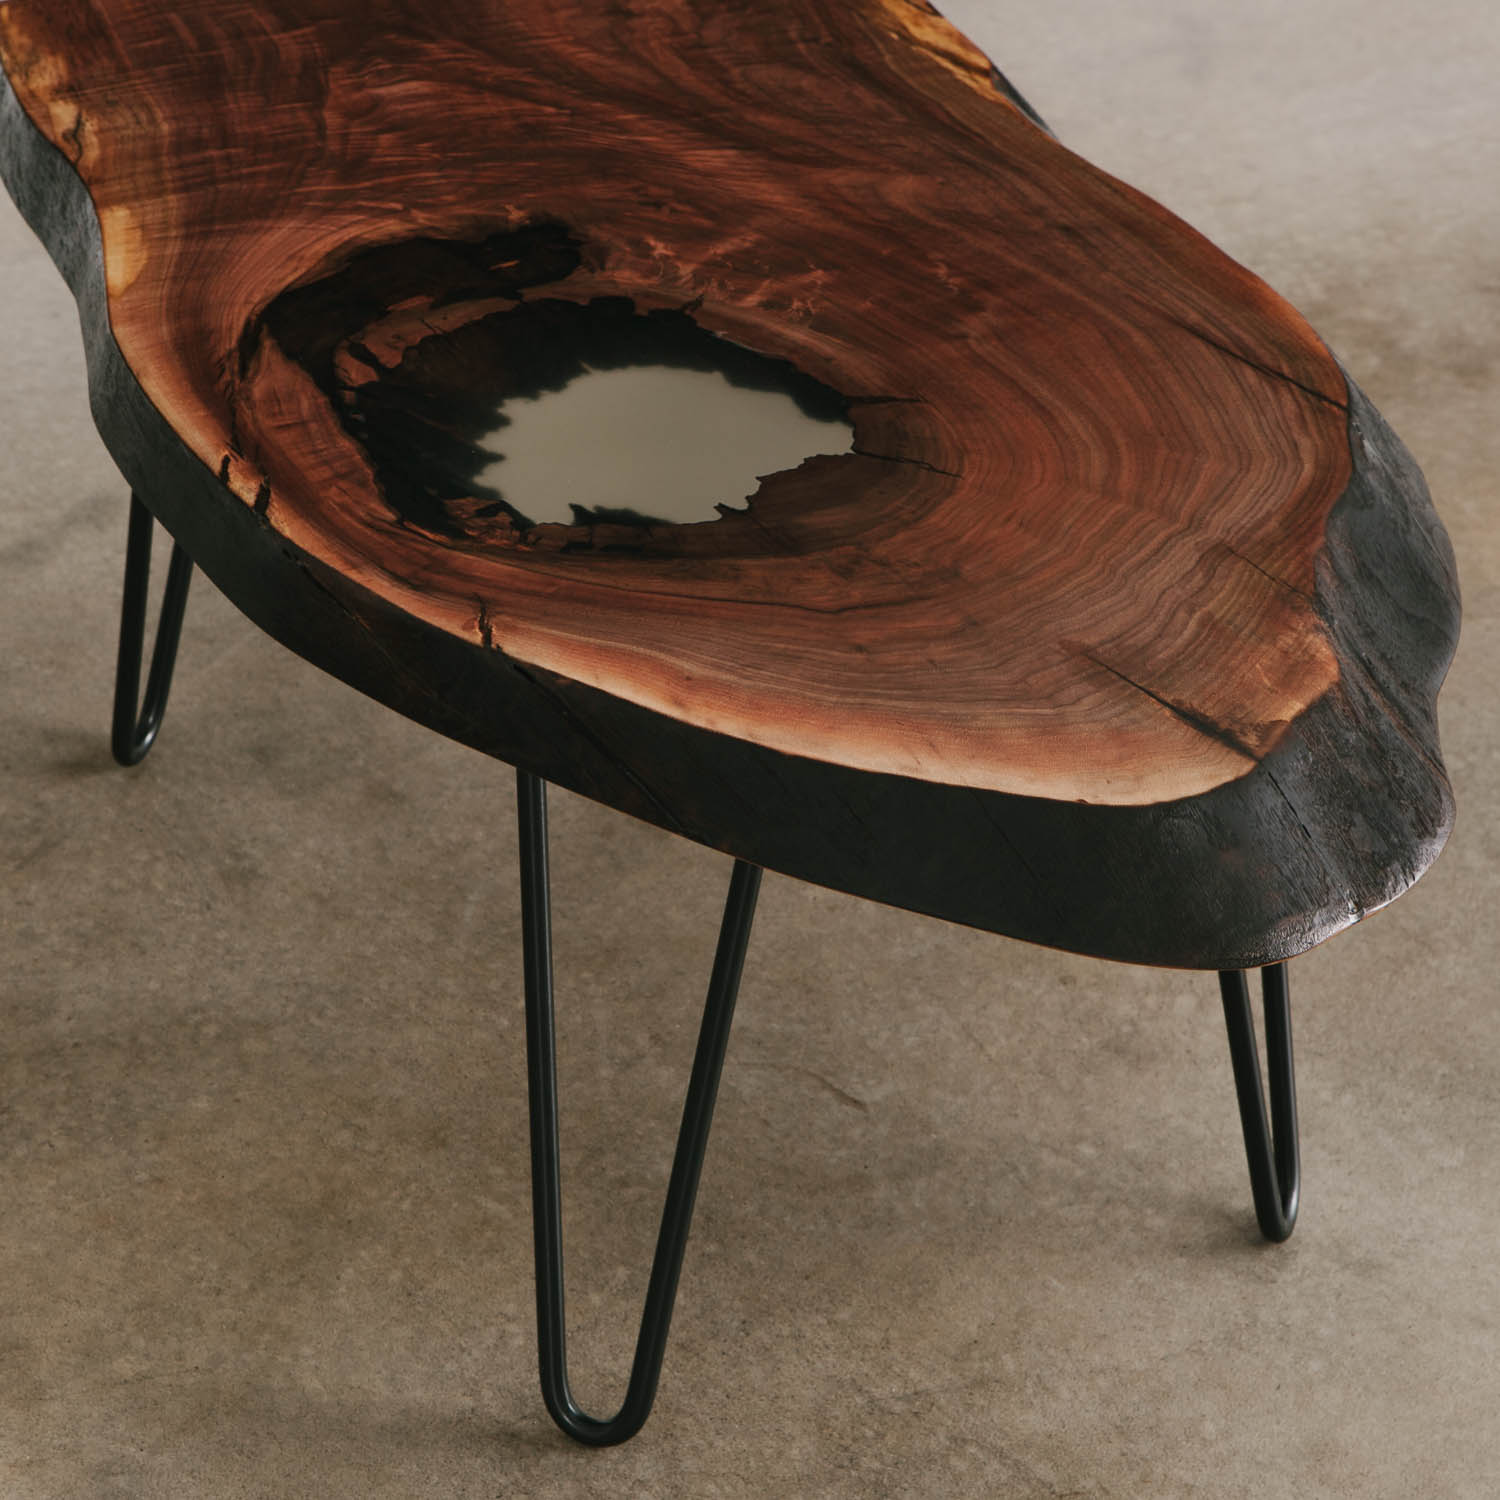 Picture of: Walnut Slab Coffee Table With Clear Resin And Skinny Black Steel Legs For City Apartment Elko Hardwoods Modern Live Edge Furniture Dining Coffee Tables Desks Benches